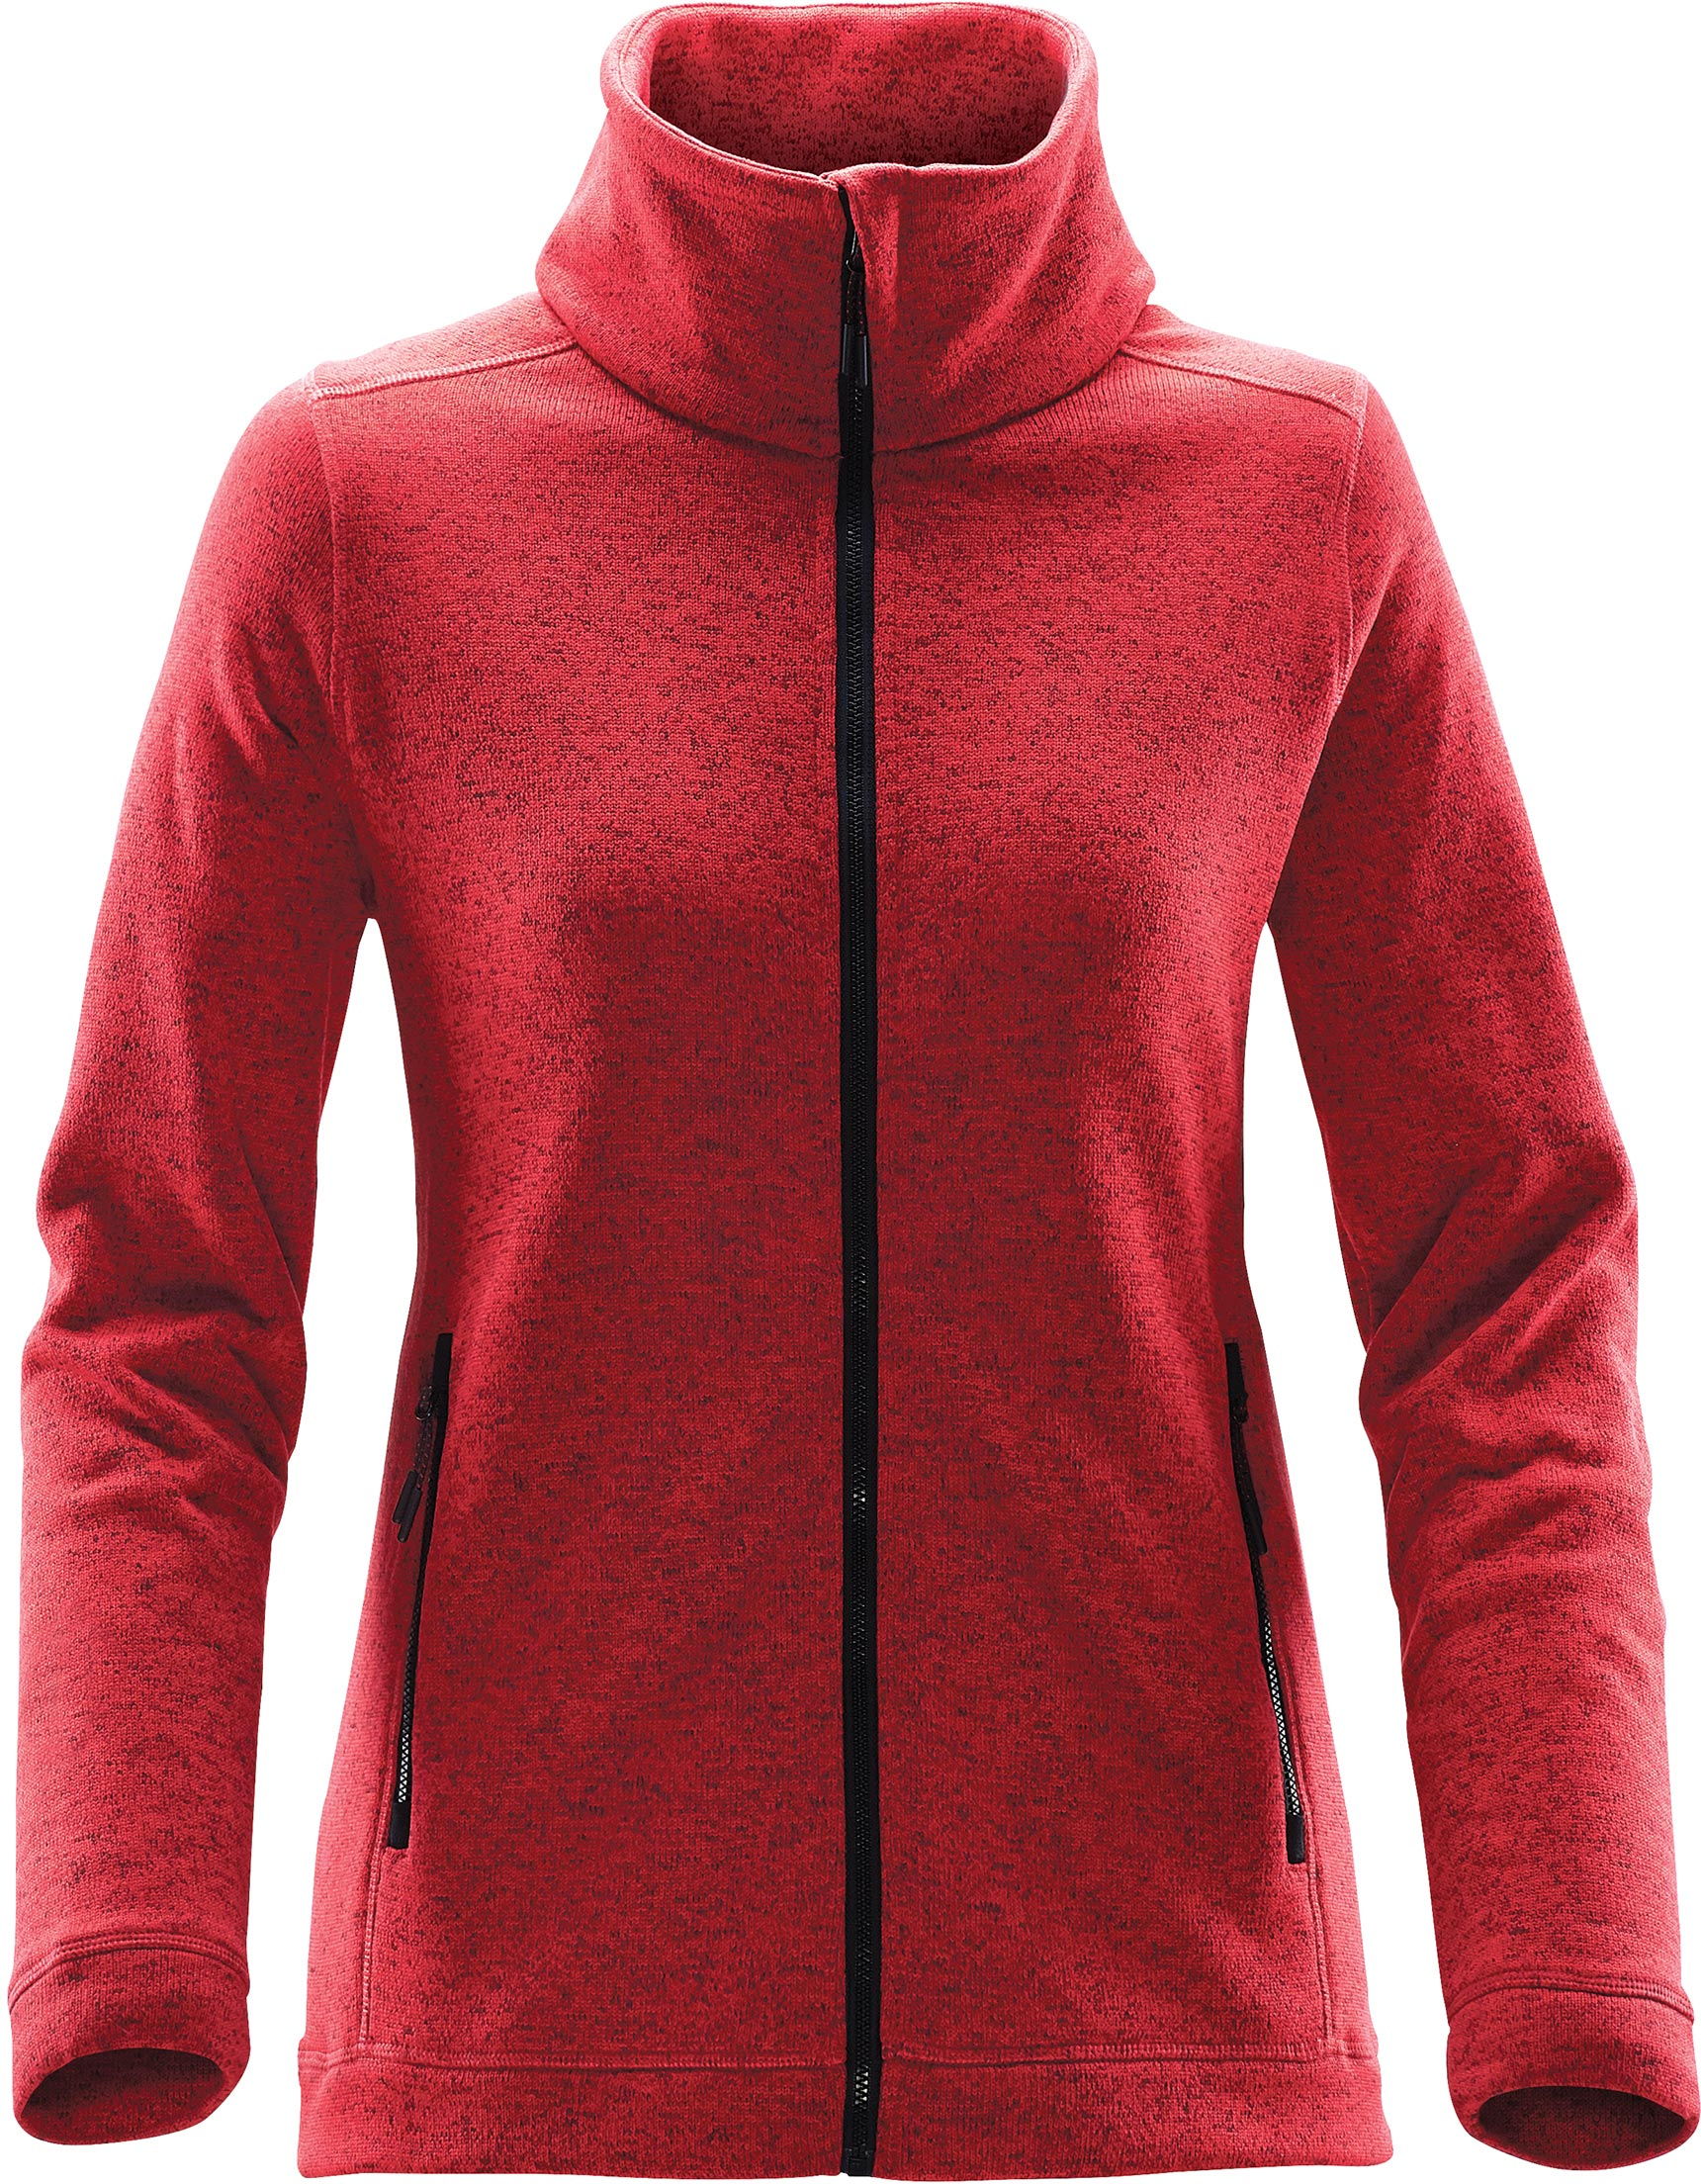 Stormtech NFX-2W - Women's Tundra Sweater Fleece Jacket